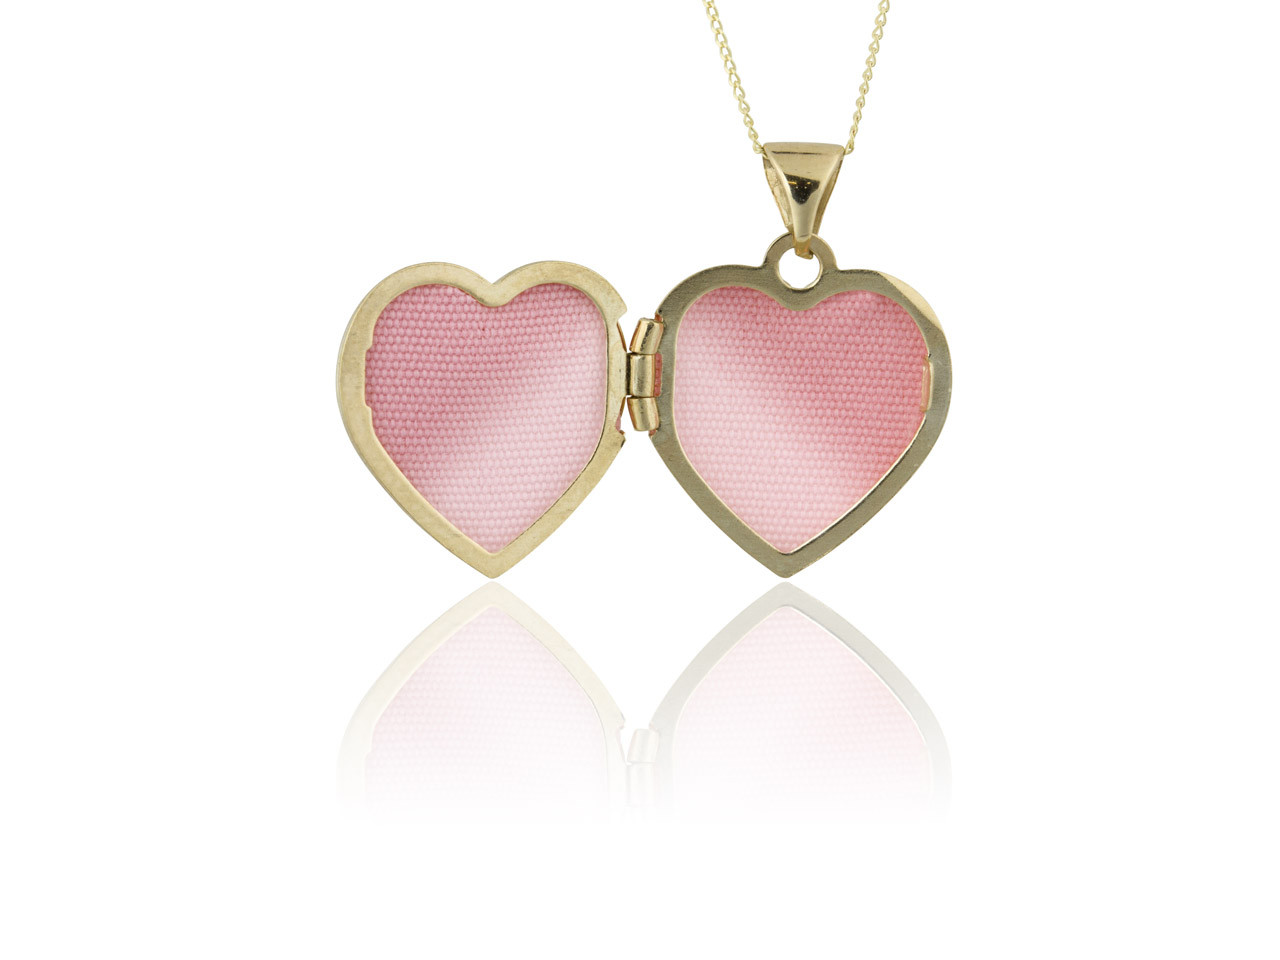 Love heart locket roses 9ct gold 18in chain necklace love heart white gold pendant necklace mozeypictures Gallery